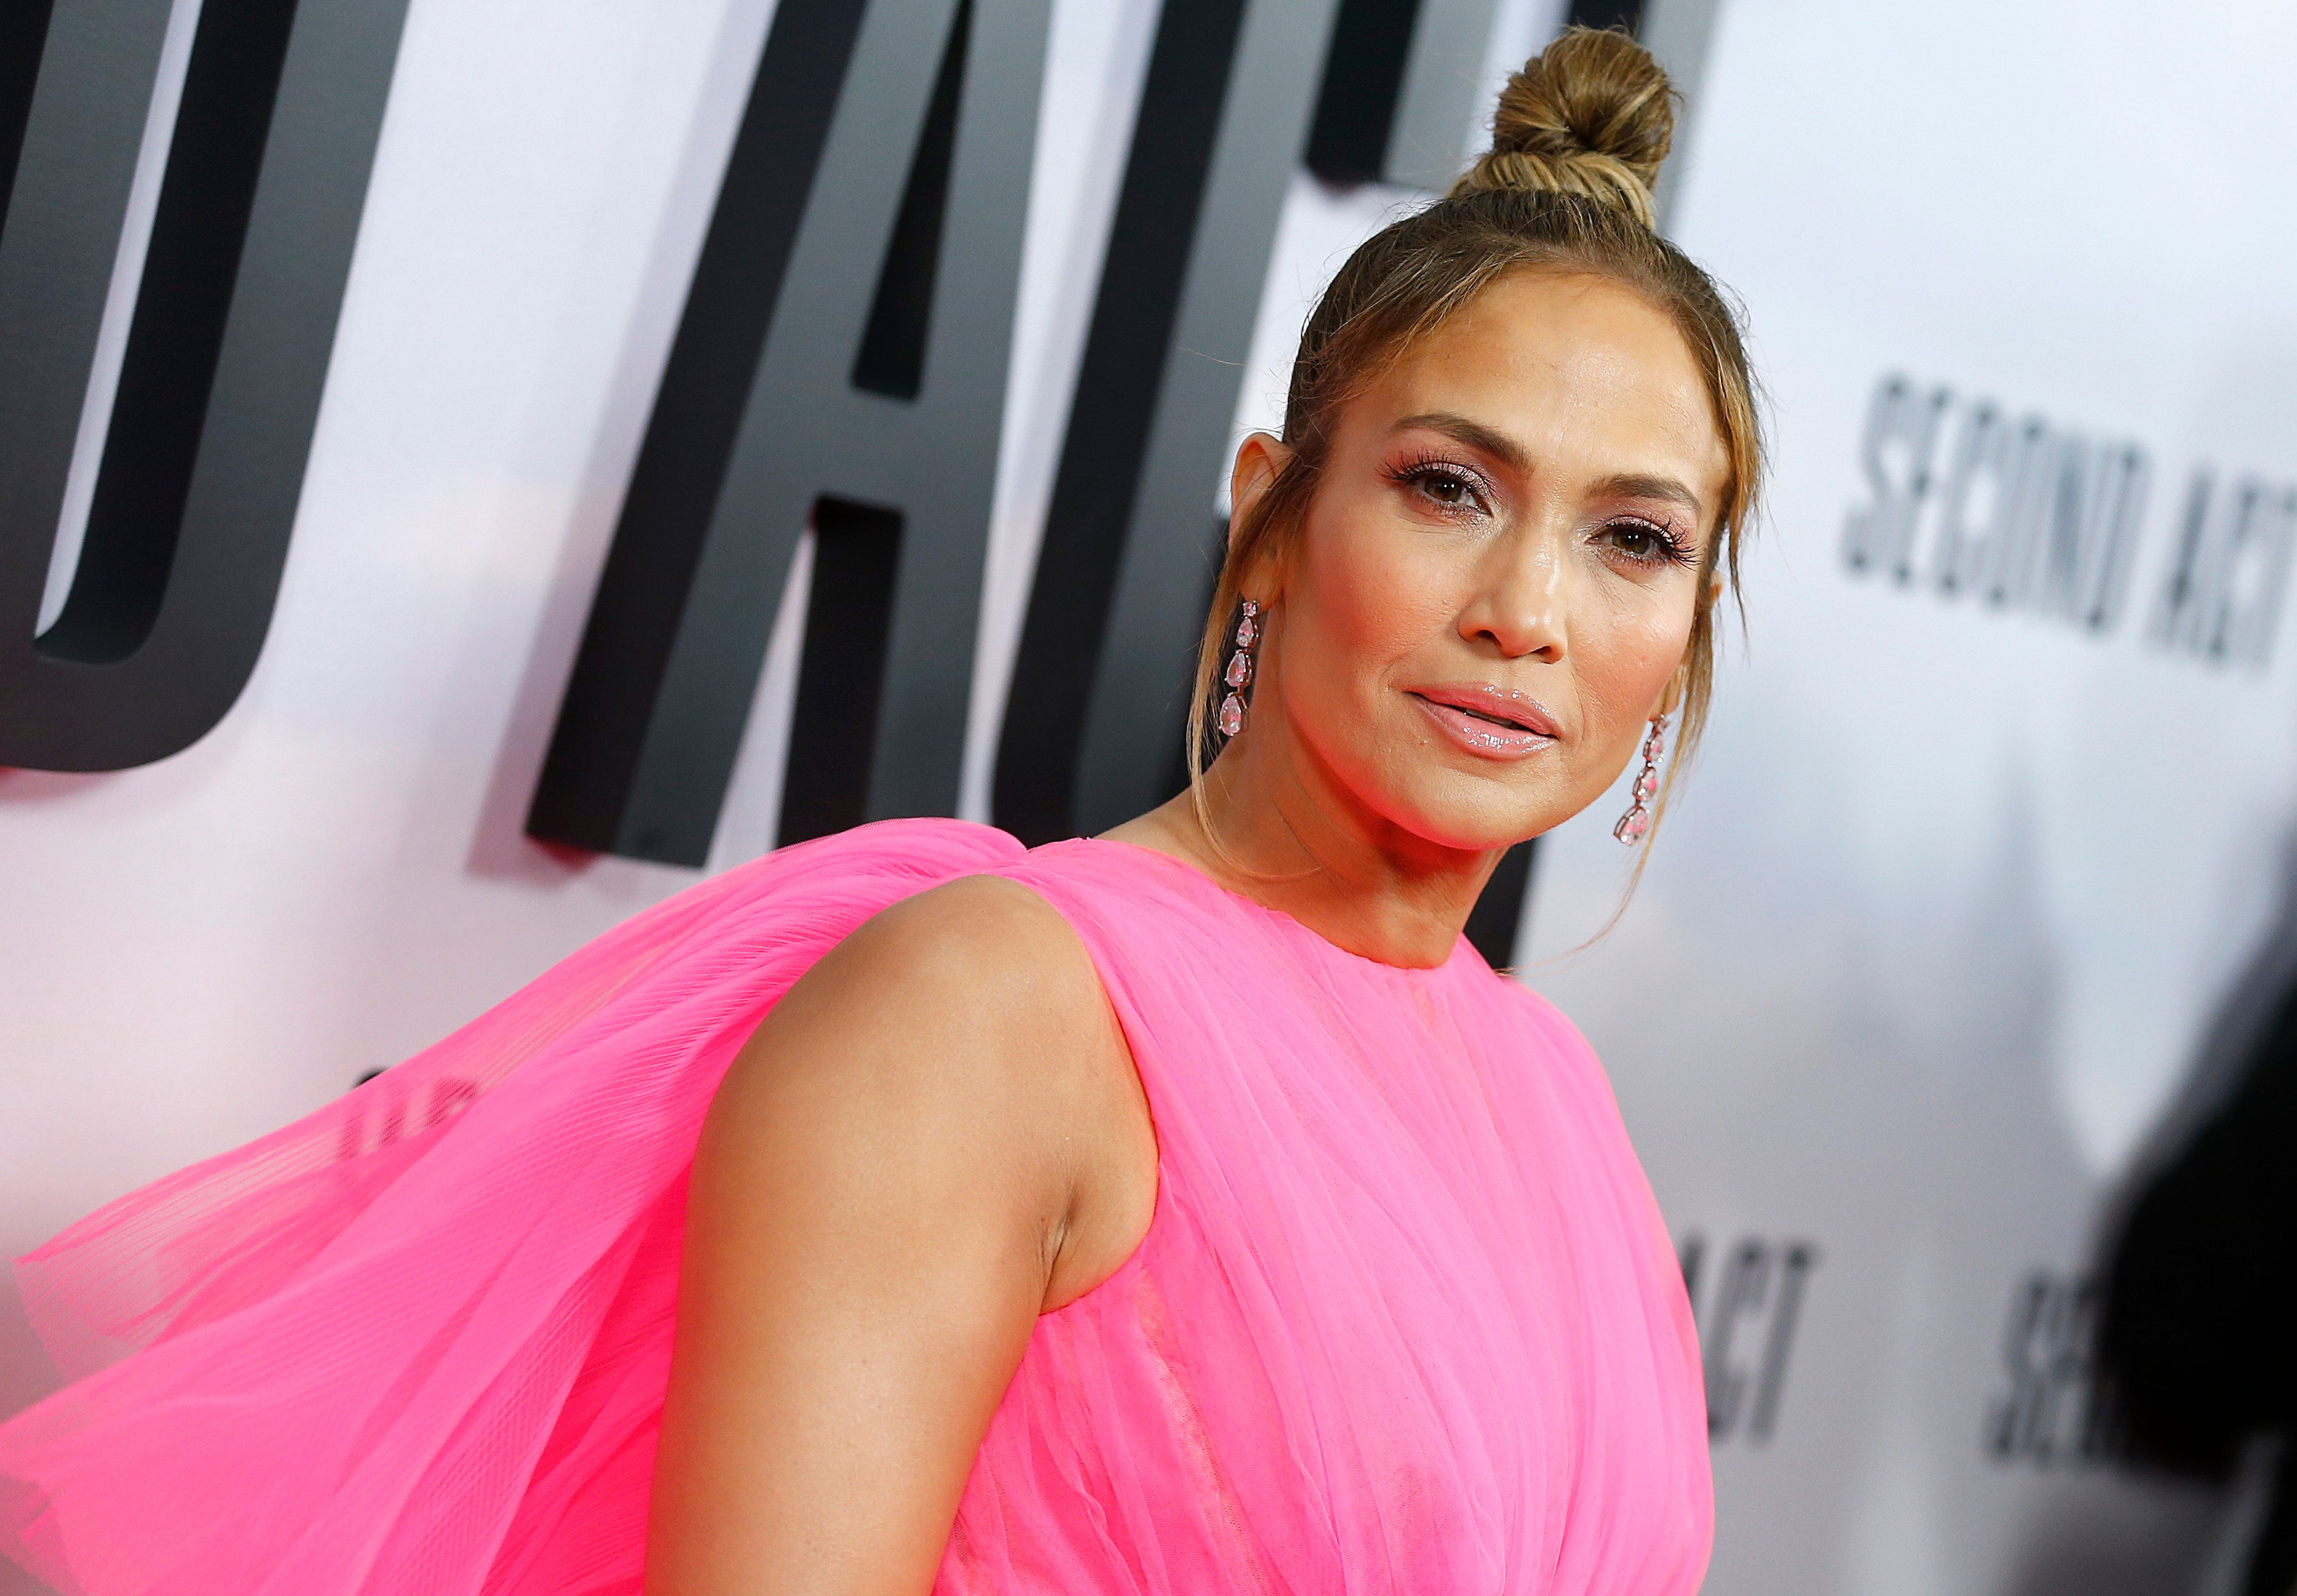 NEW YORK, NEW YORK - DECEMBER 12: Jennifer Lopez   attends  'Second Act' World Premiere at Regal Union Square Theatre, Stadium 14 on December 12, 2018 in New York City. (Photo by John Lamparski/WireImage)